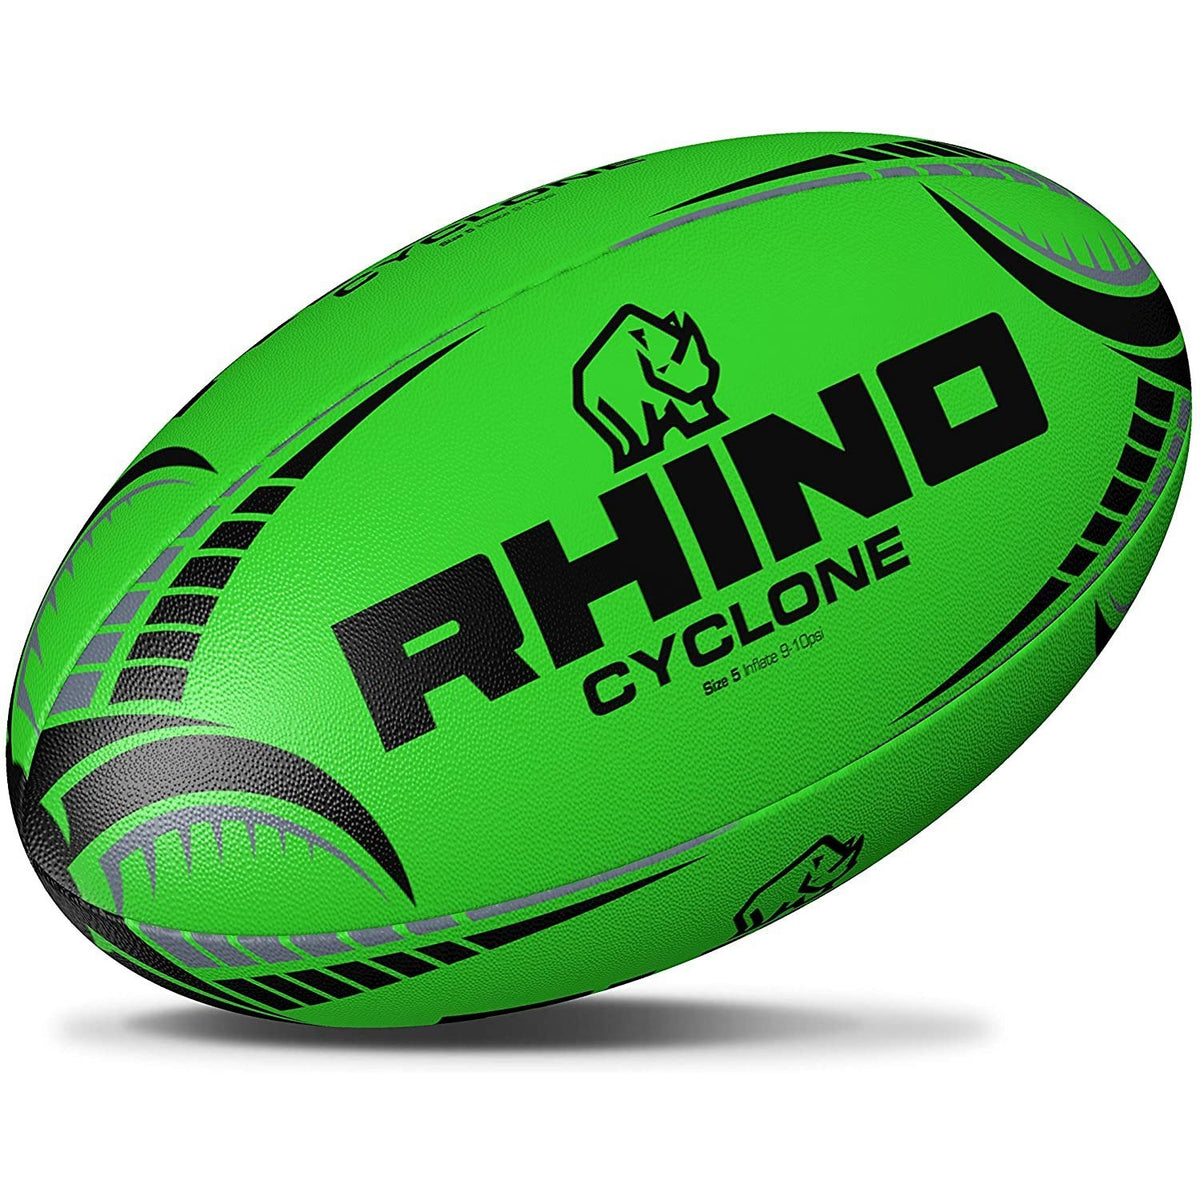 Fluorescent Cyclone Practice Rugby Ball - www.therugbyshop.com